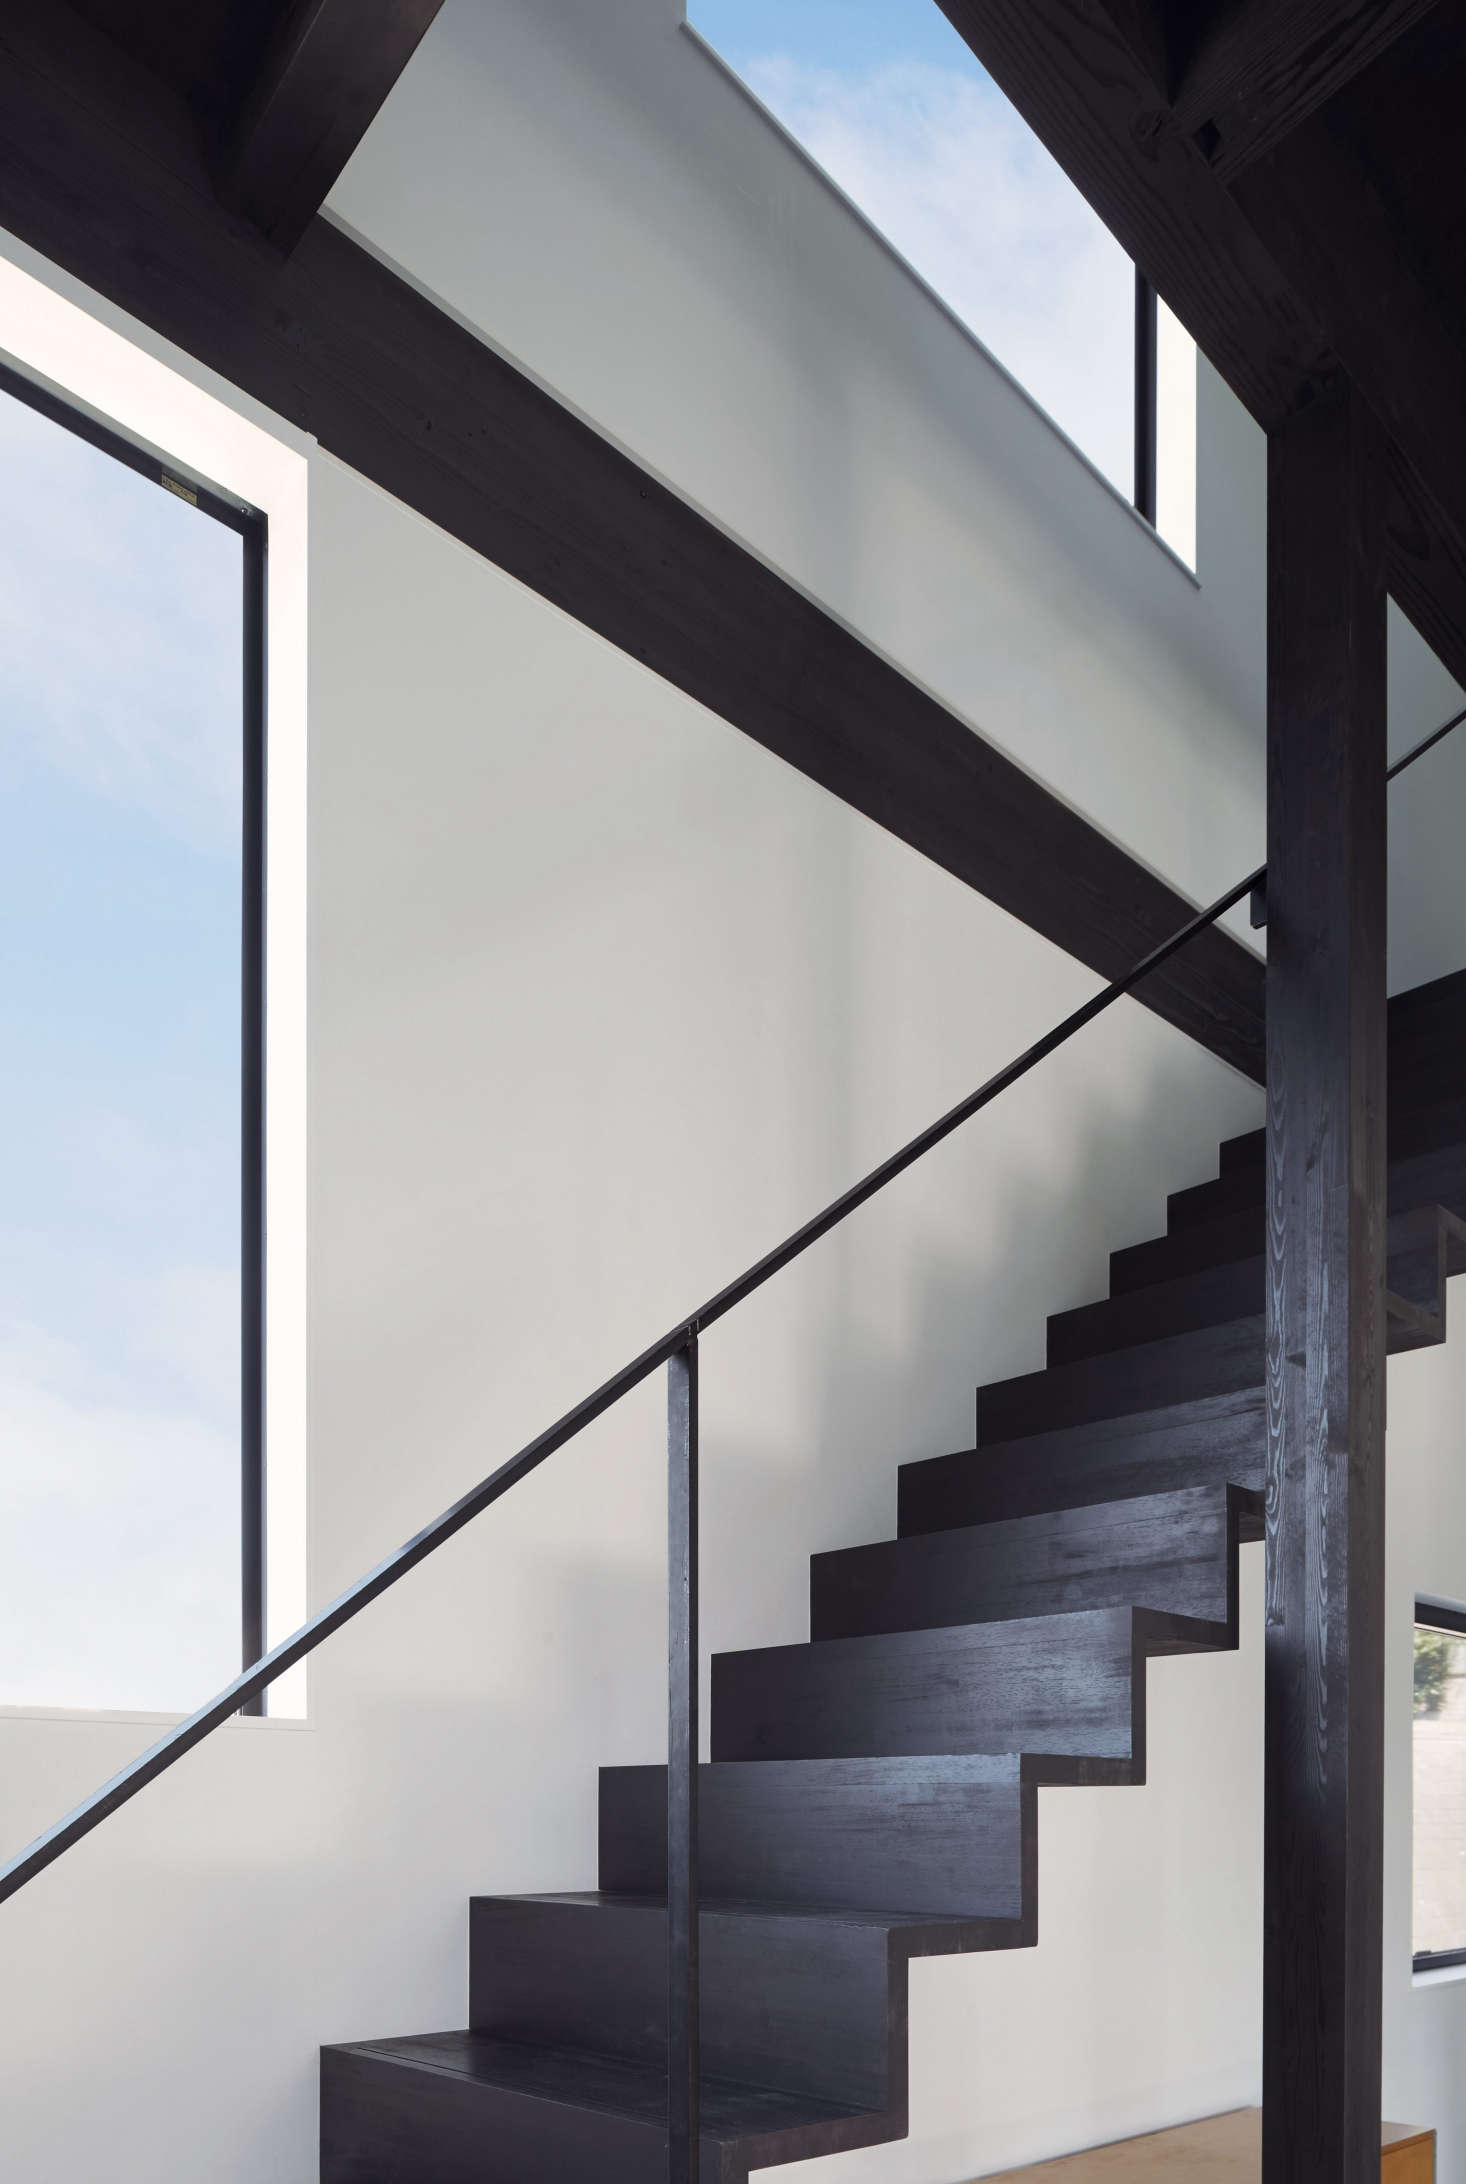 The Douglas fir stairs have a narrow steel railing (yes, it passed code). As for the safety question: &#8